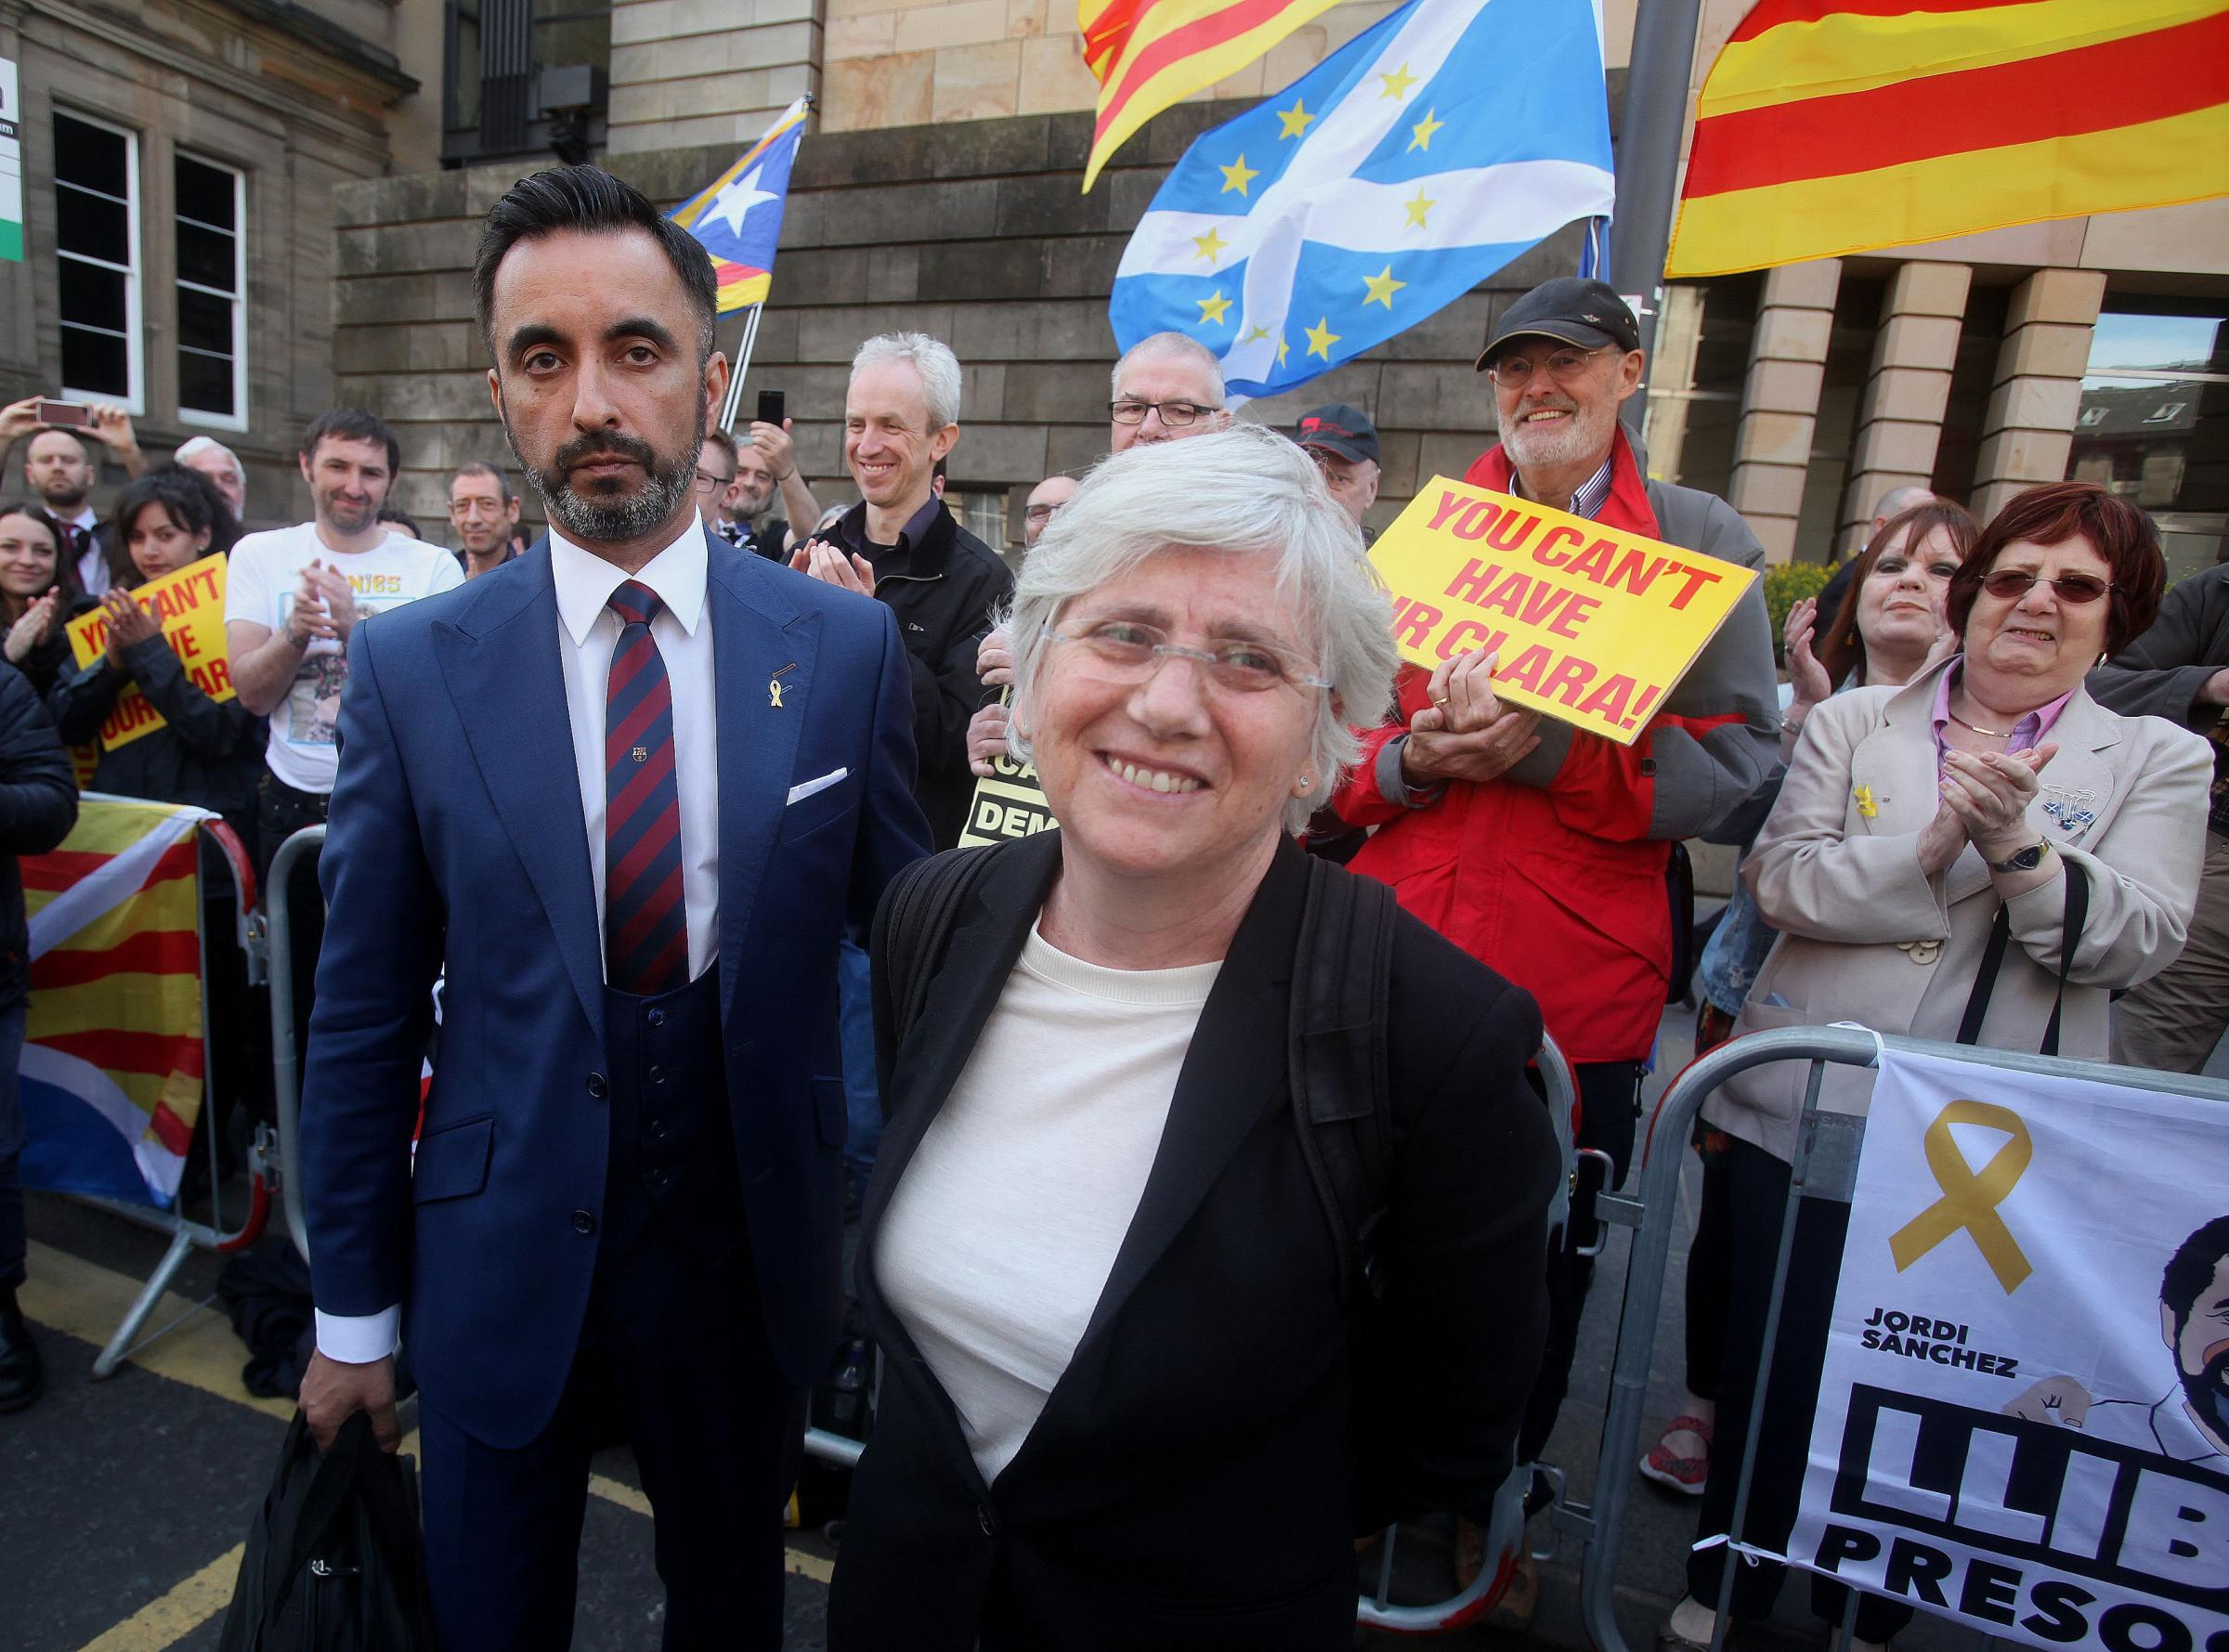 Clara Ponsati and lawyer Aamer Anwar leave Edinburgh Sheriff Court tuesday after trial hearing..Pic Gordon Terris/The Herald.15/5/18.